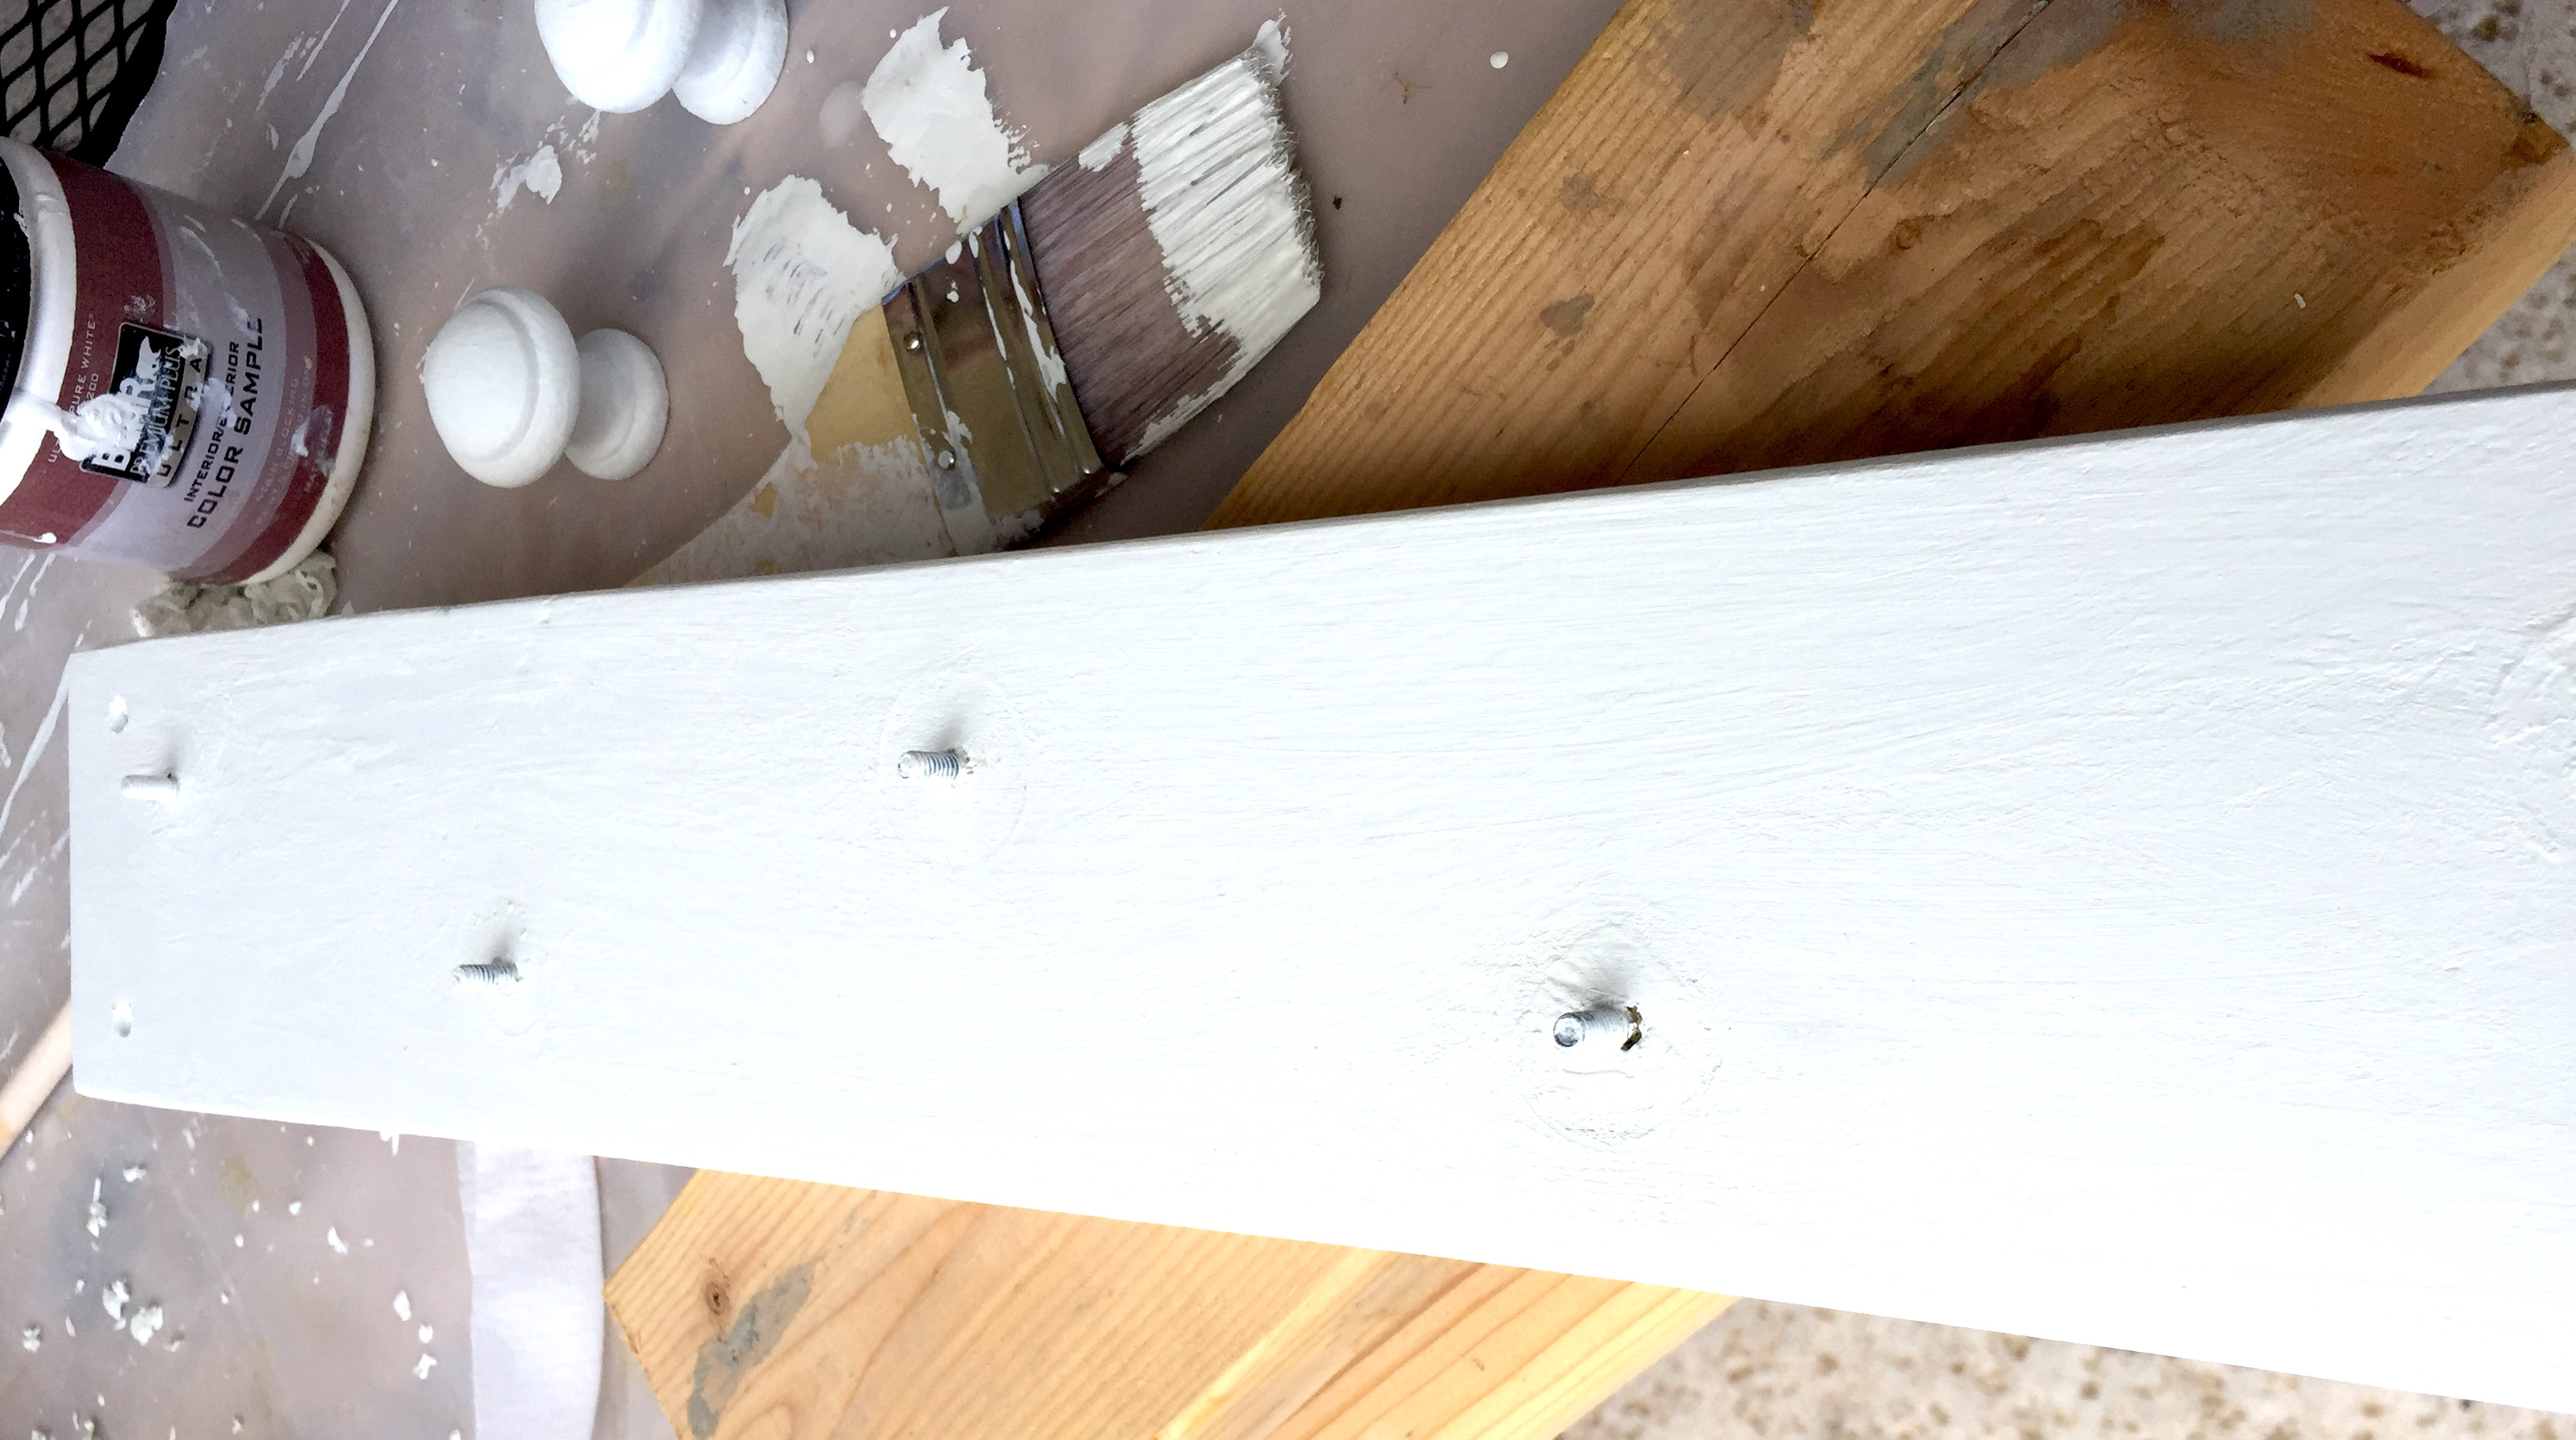 Coat rack after painting with white acrylic paint.